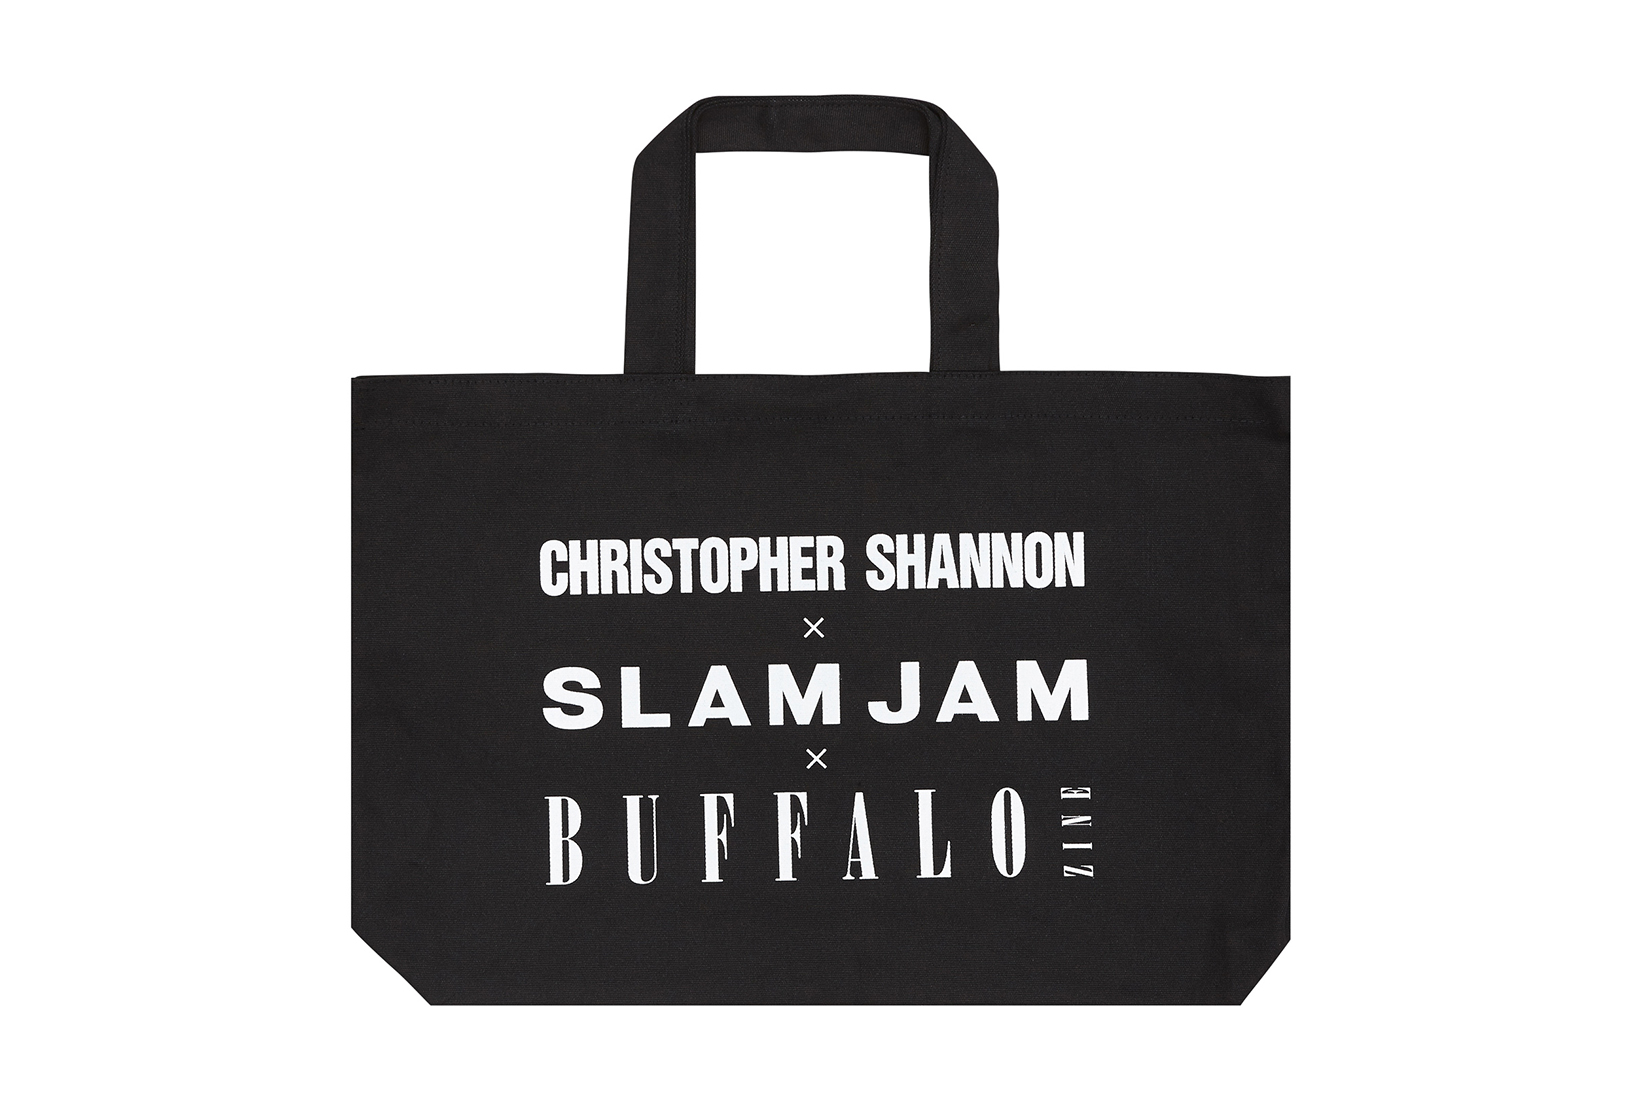 Slam Jam Buffalo Zine Christopher Shannon Capsule Collection